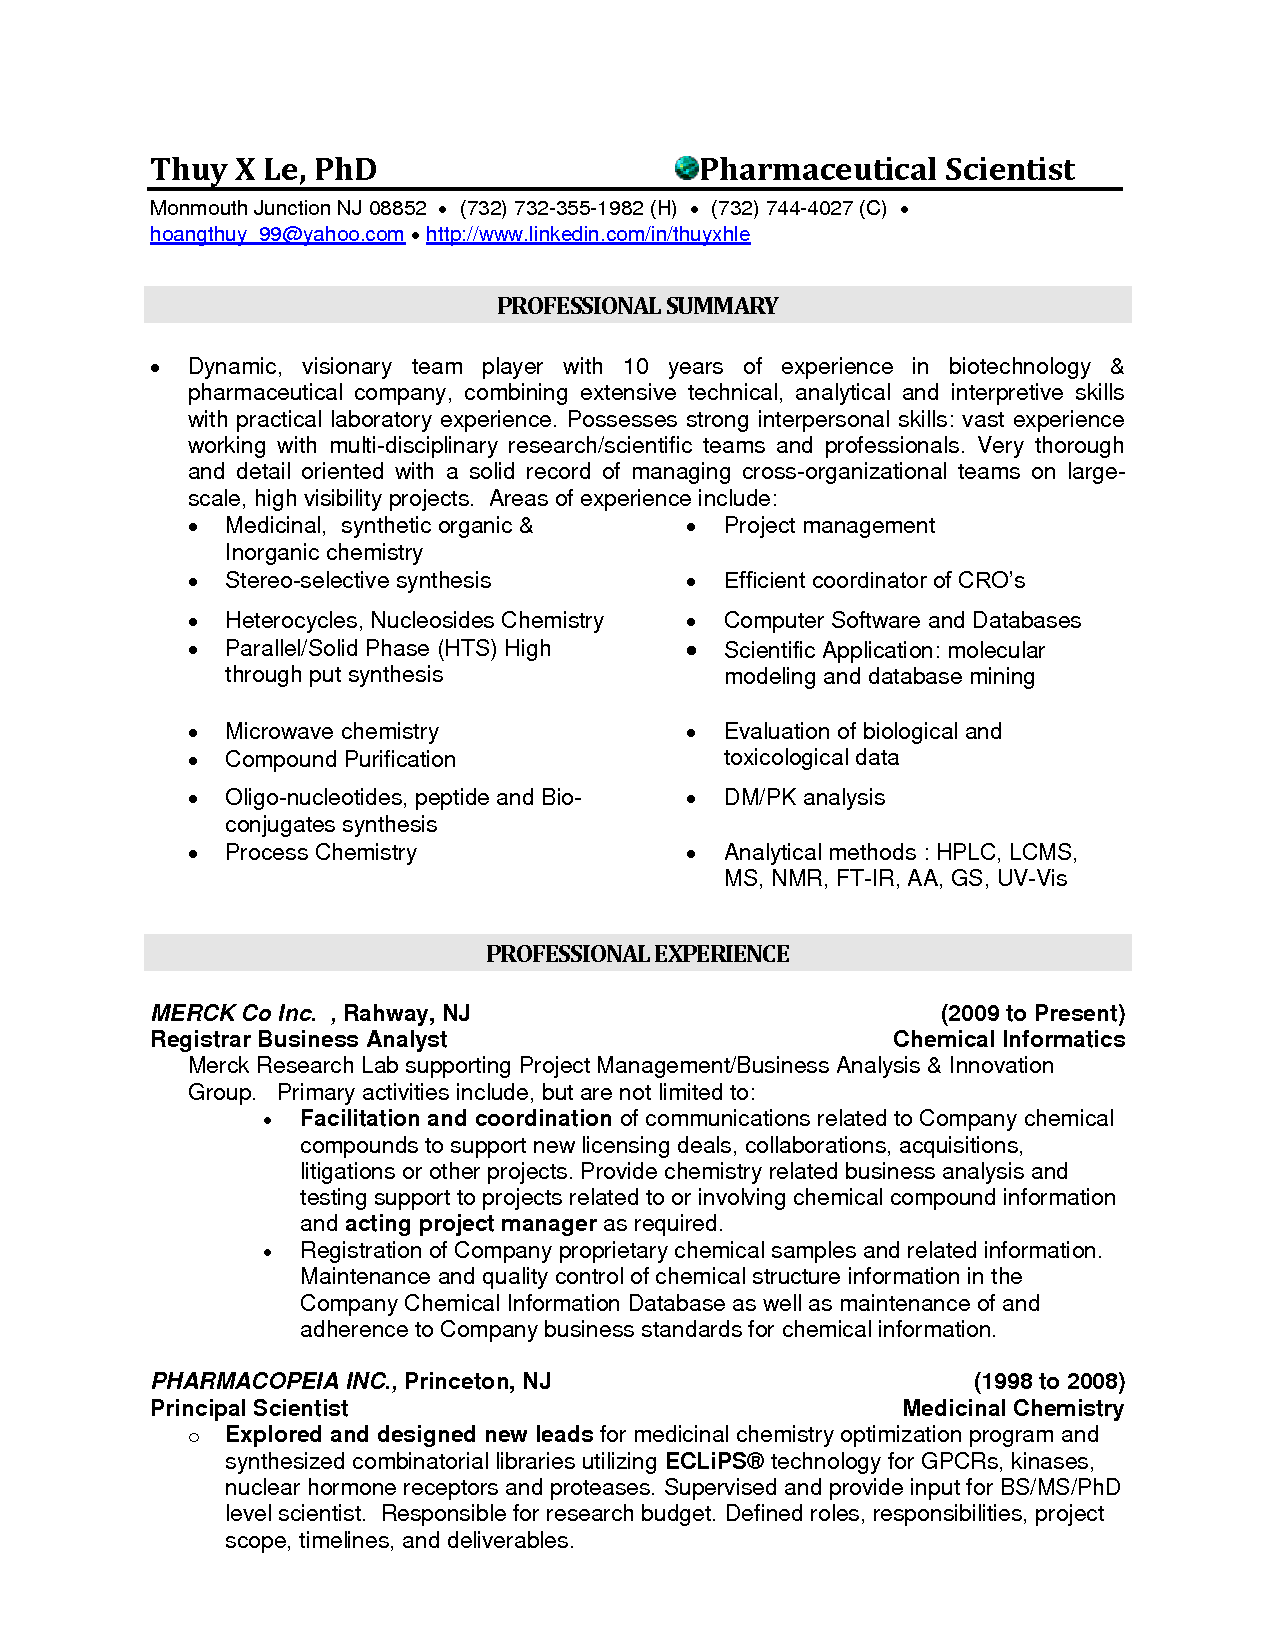 Professional Biochemist resume - Again, a summary is used as opposed ...